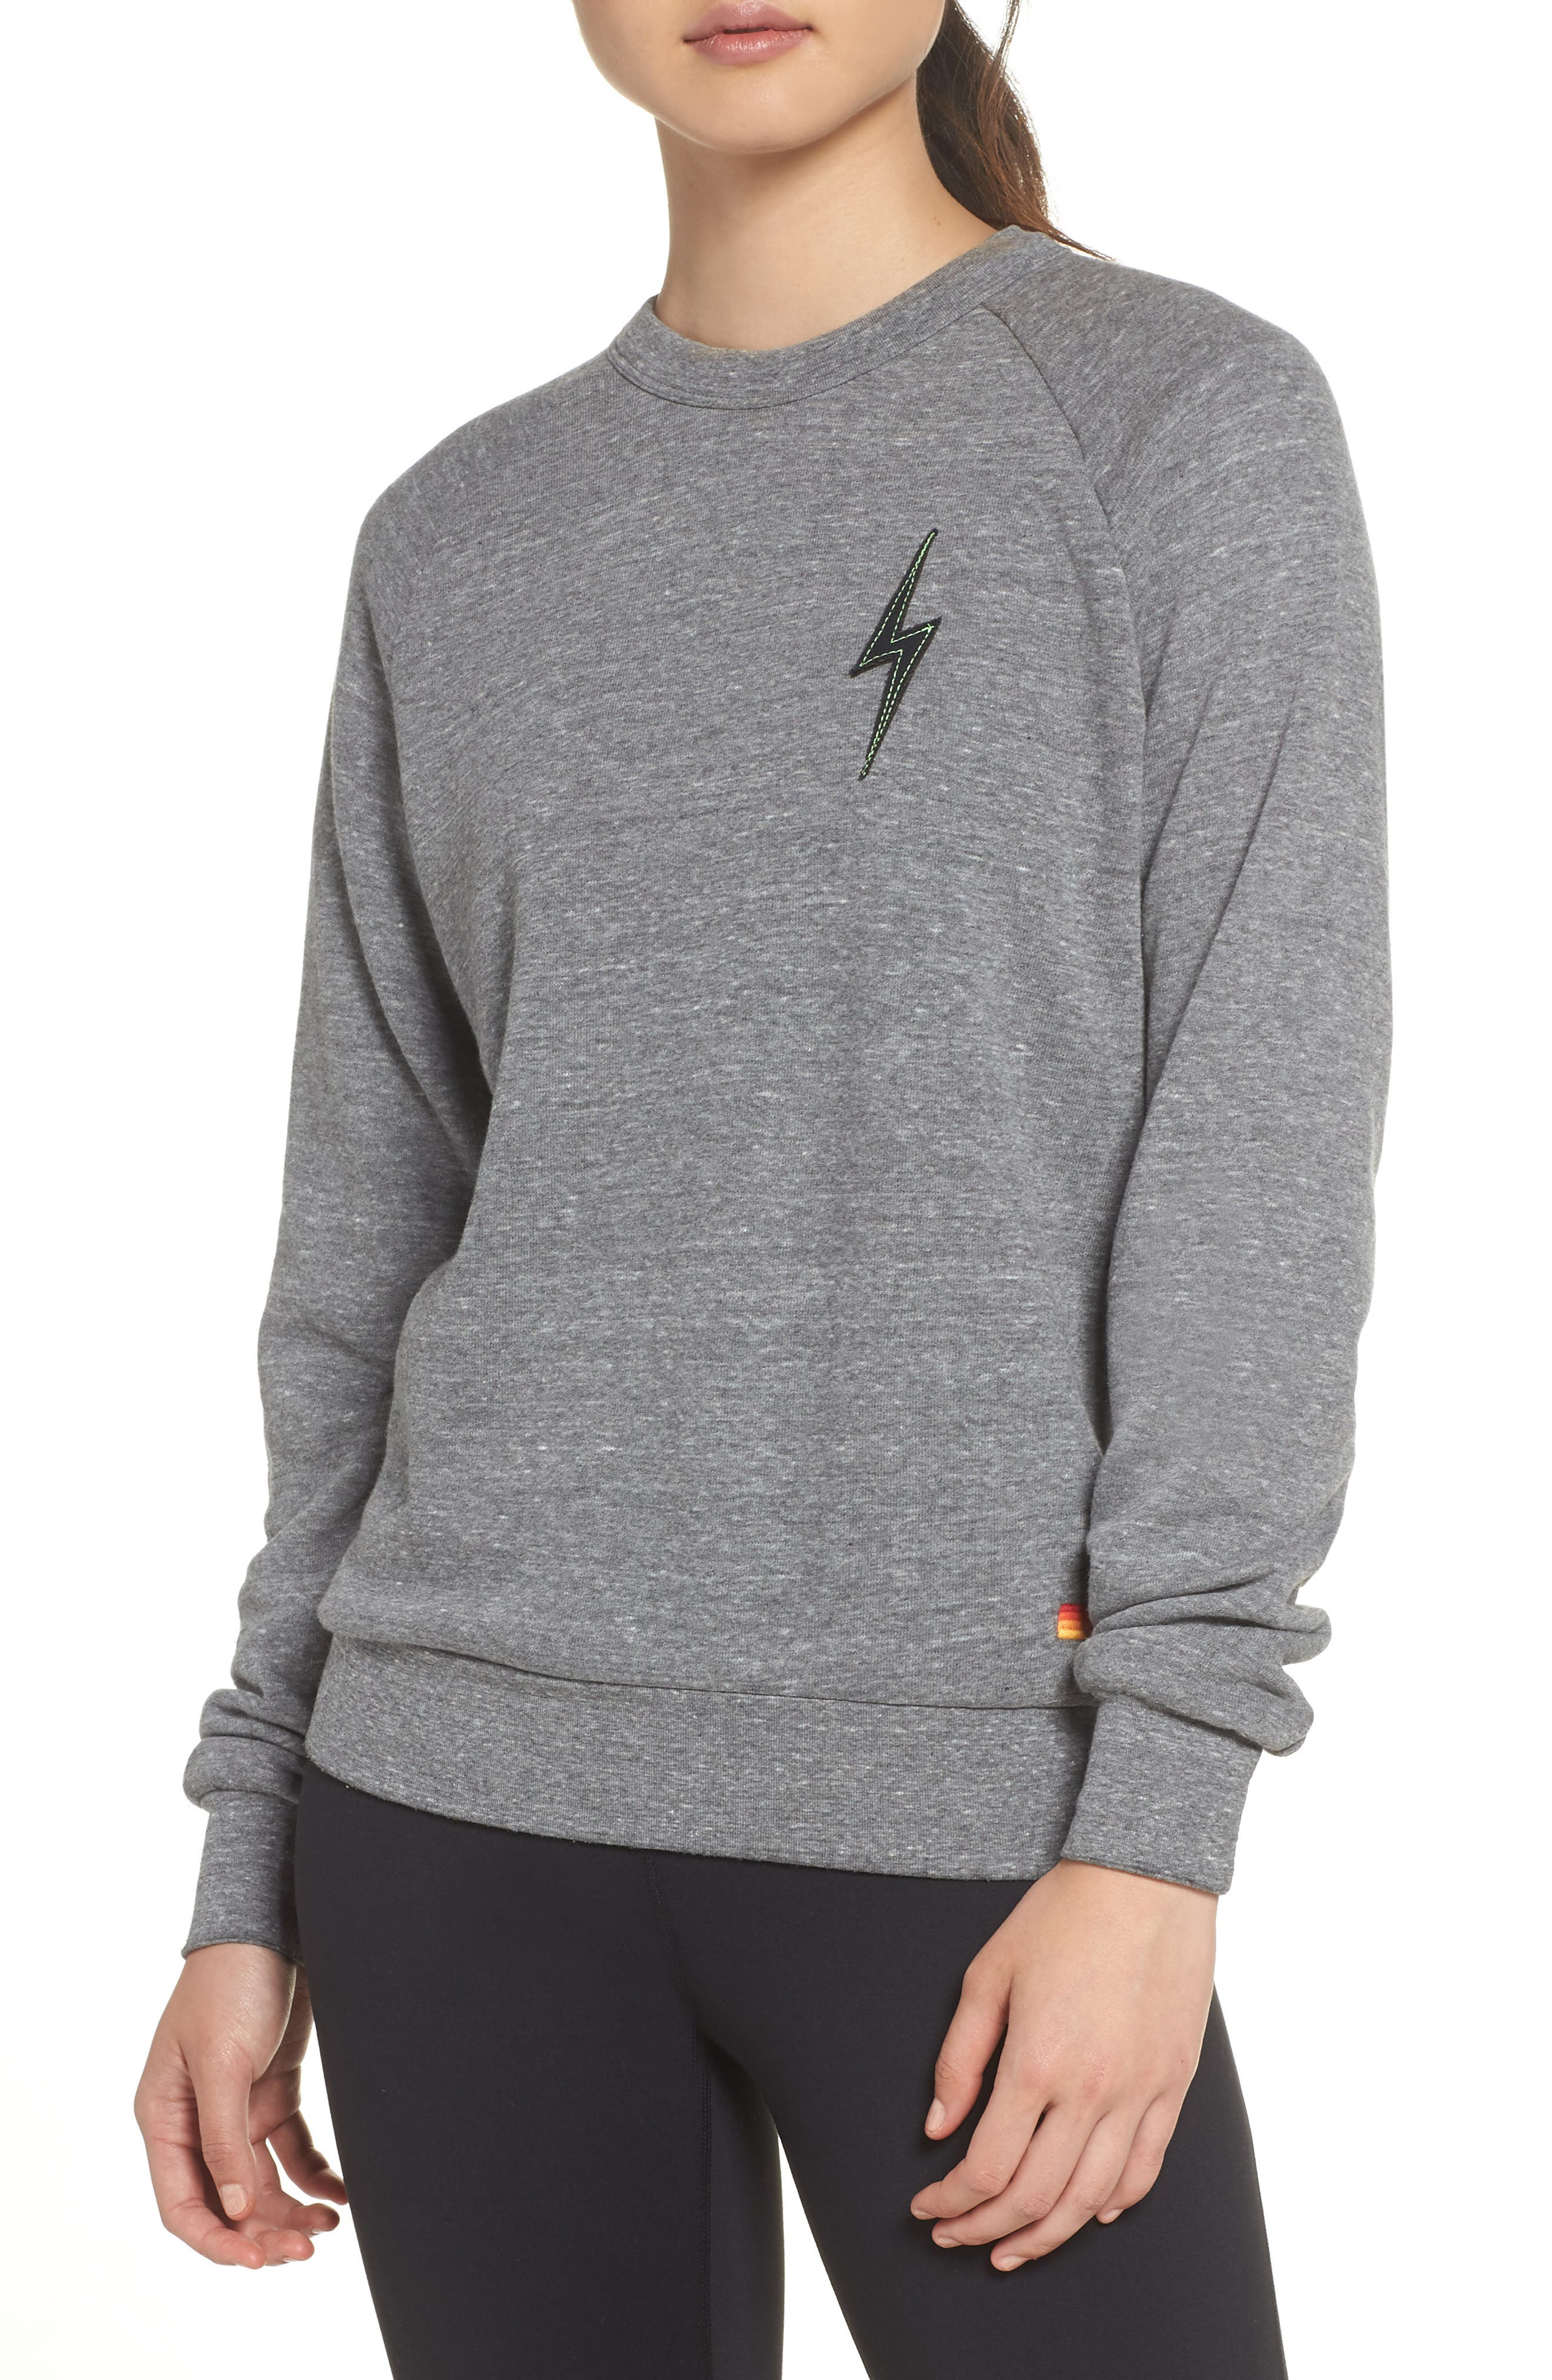 Bolt Stitch Crew Sweatshirt,                             Main thumbnail 1, color,                             HEATHER GREY